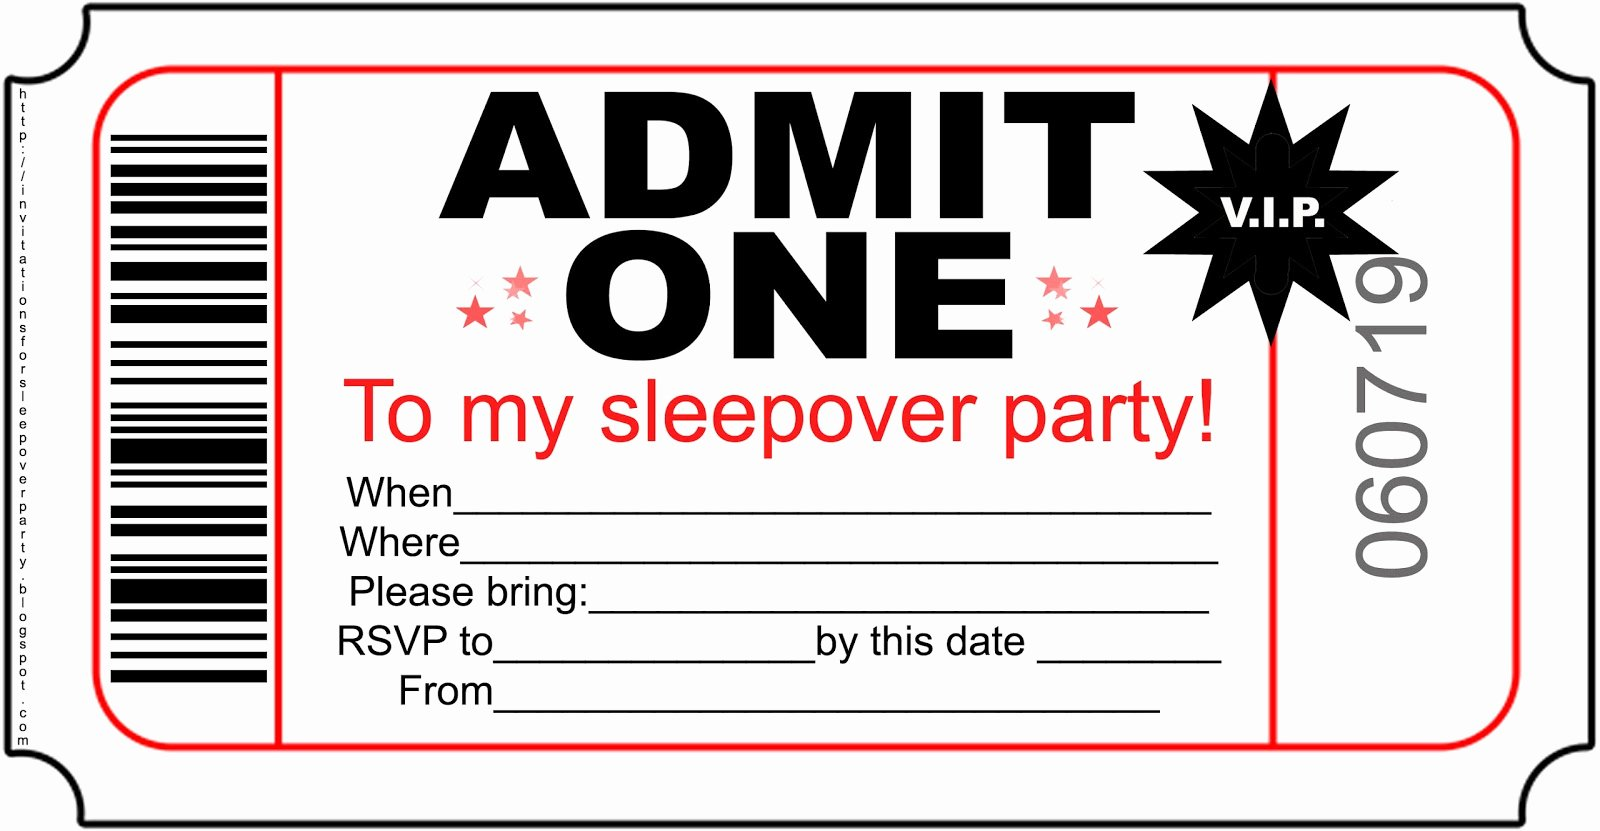 Slumber Party Invitations Templates Free New Invitations for Sleepover Party